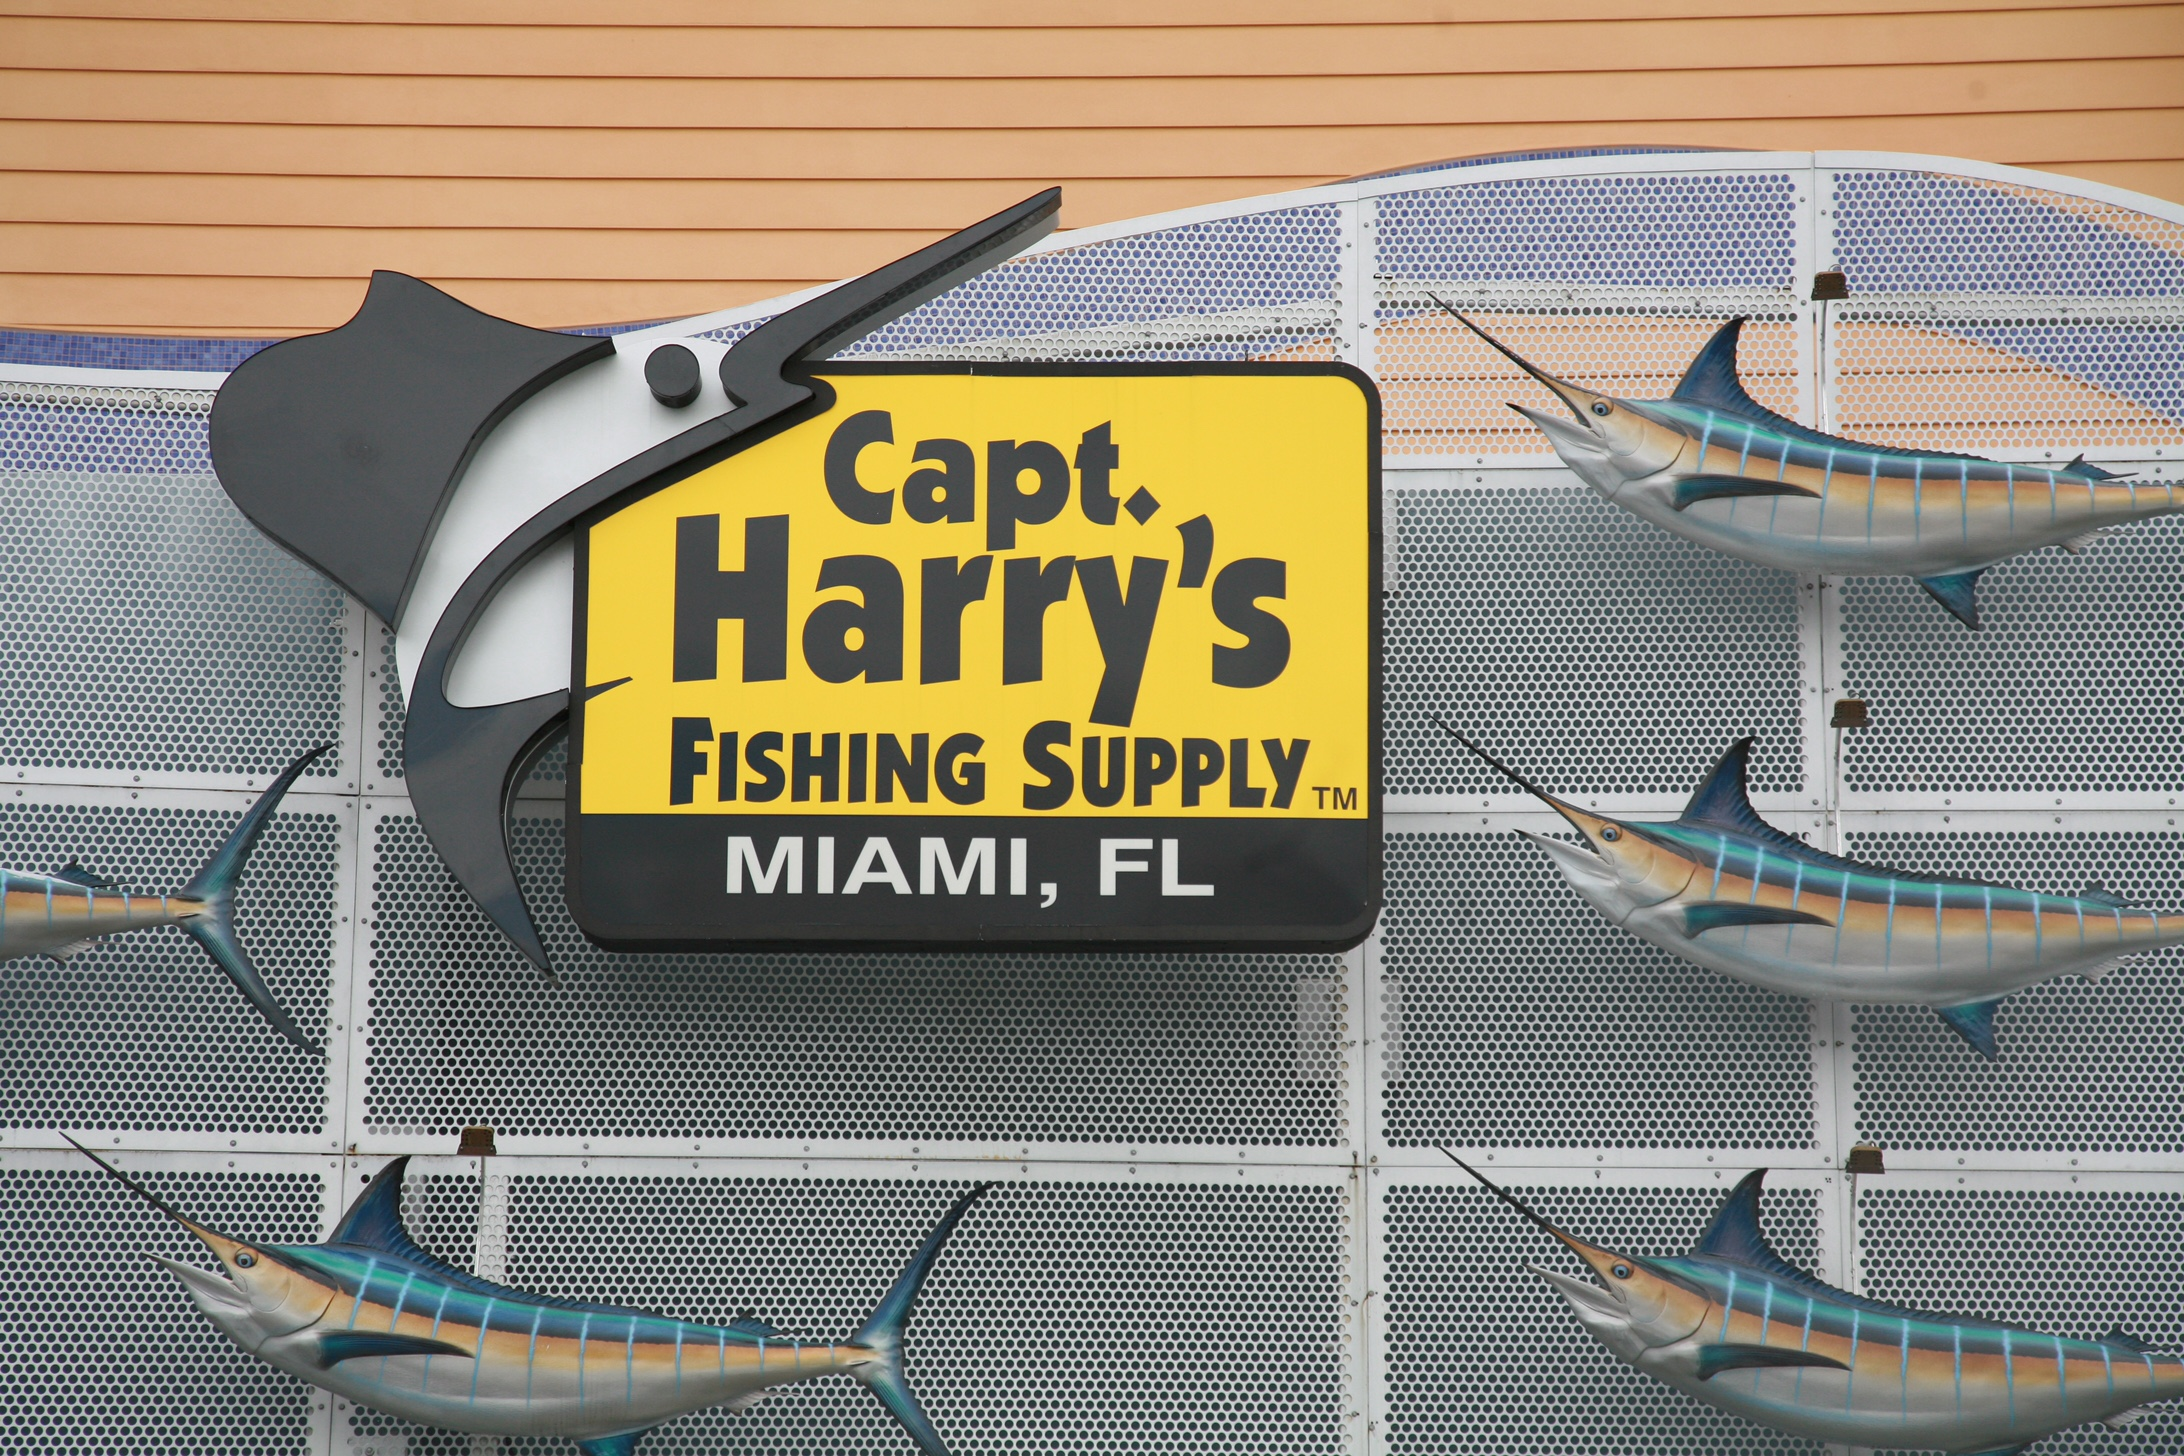 Capt harry 39 s fishing supply inc 8501 nw 7th ave miami fl for Miami fishing supply